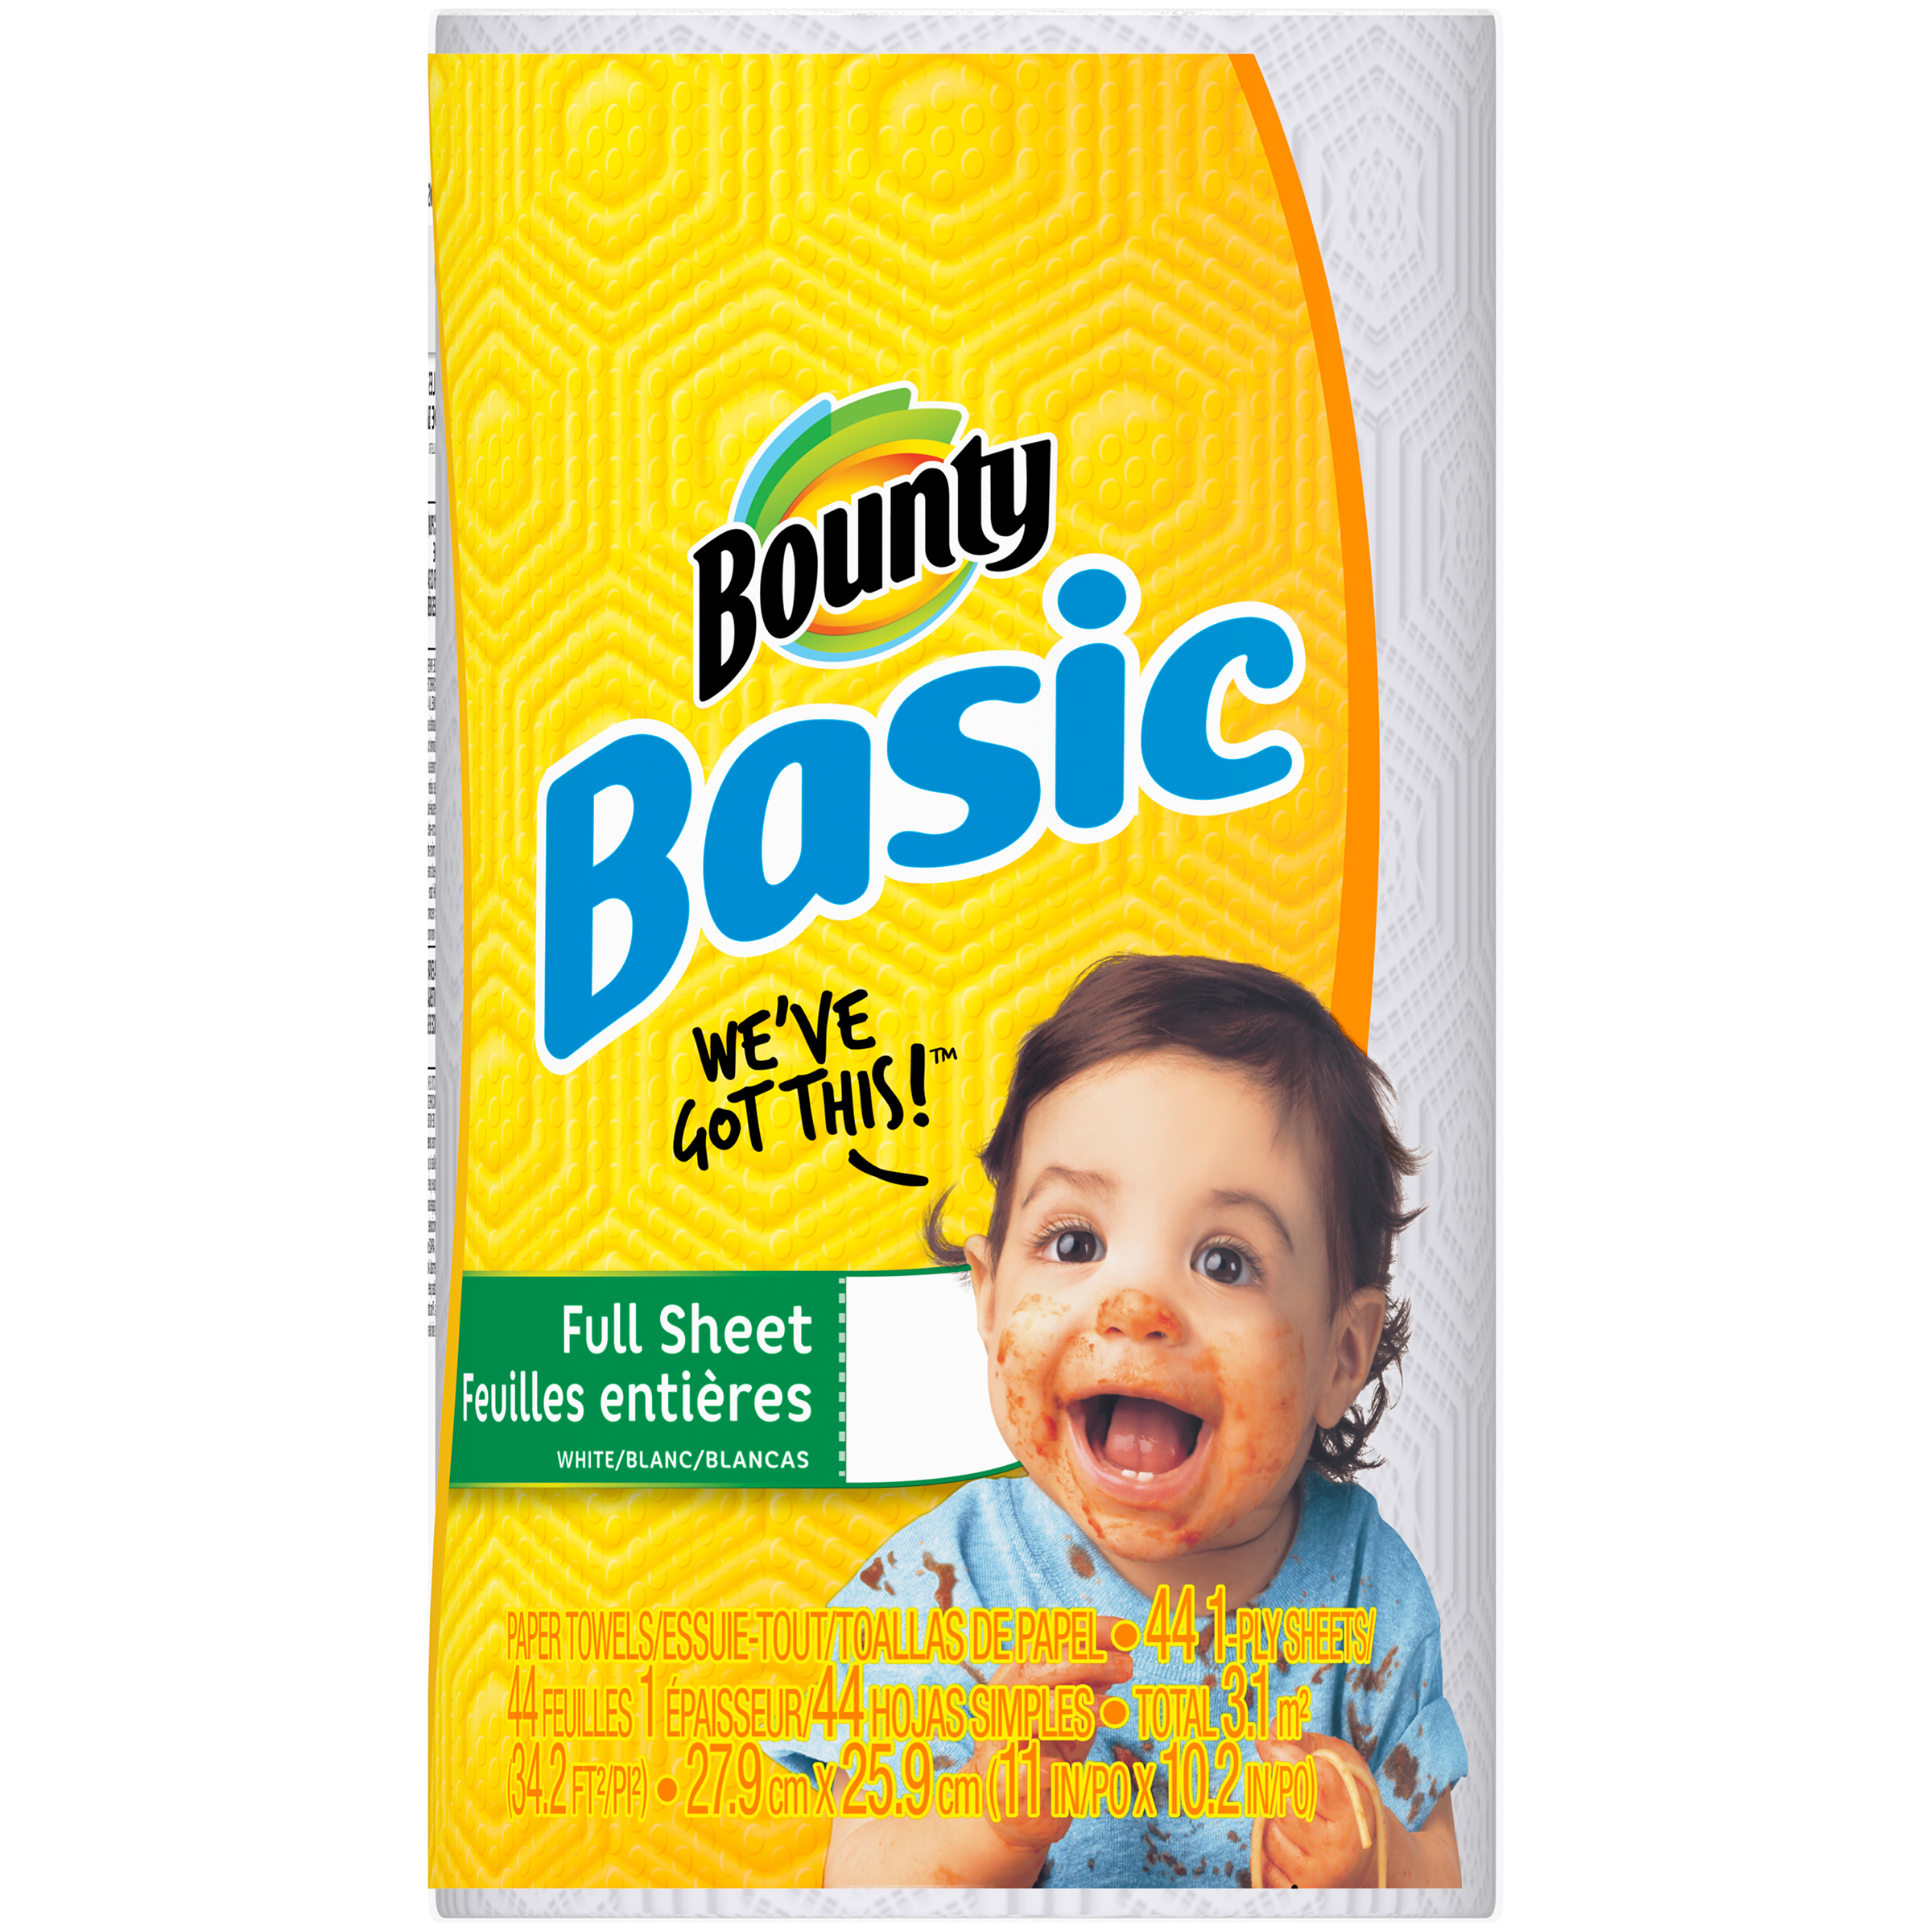 Bounty Basic Paper Towels, 44 sheets